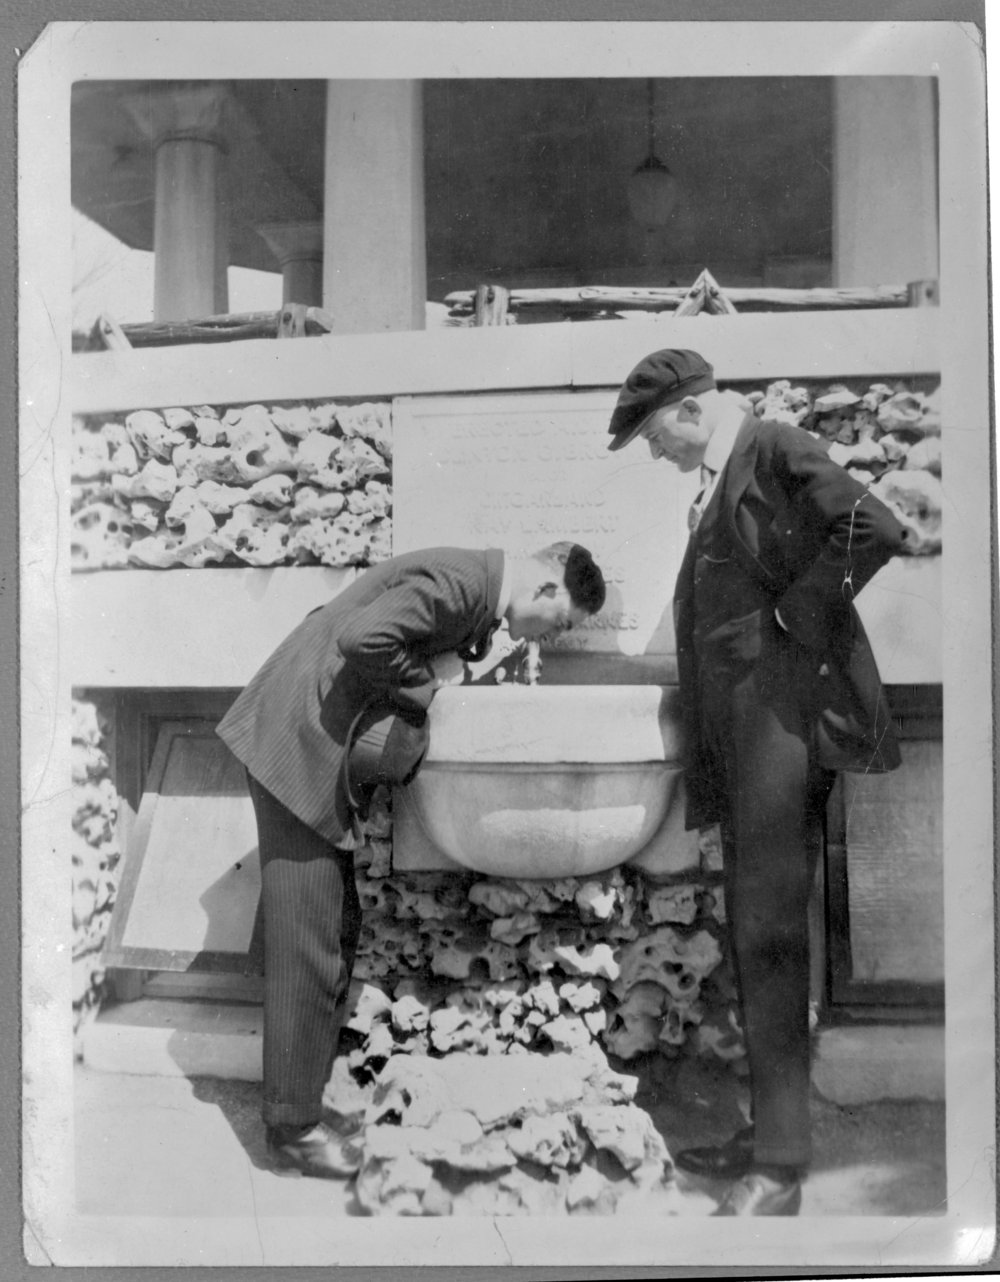 Virgil Barnes in San Antonio, Texas - Barnes is drinking from the water fountain in this photo. The man watching him is unidentified. (*13)